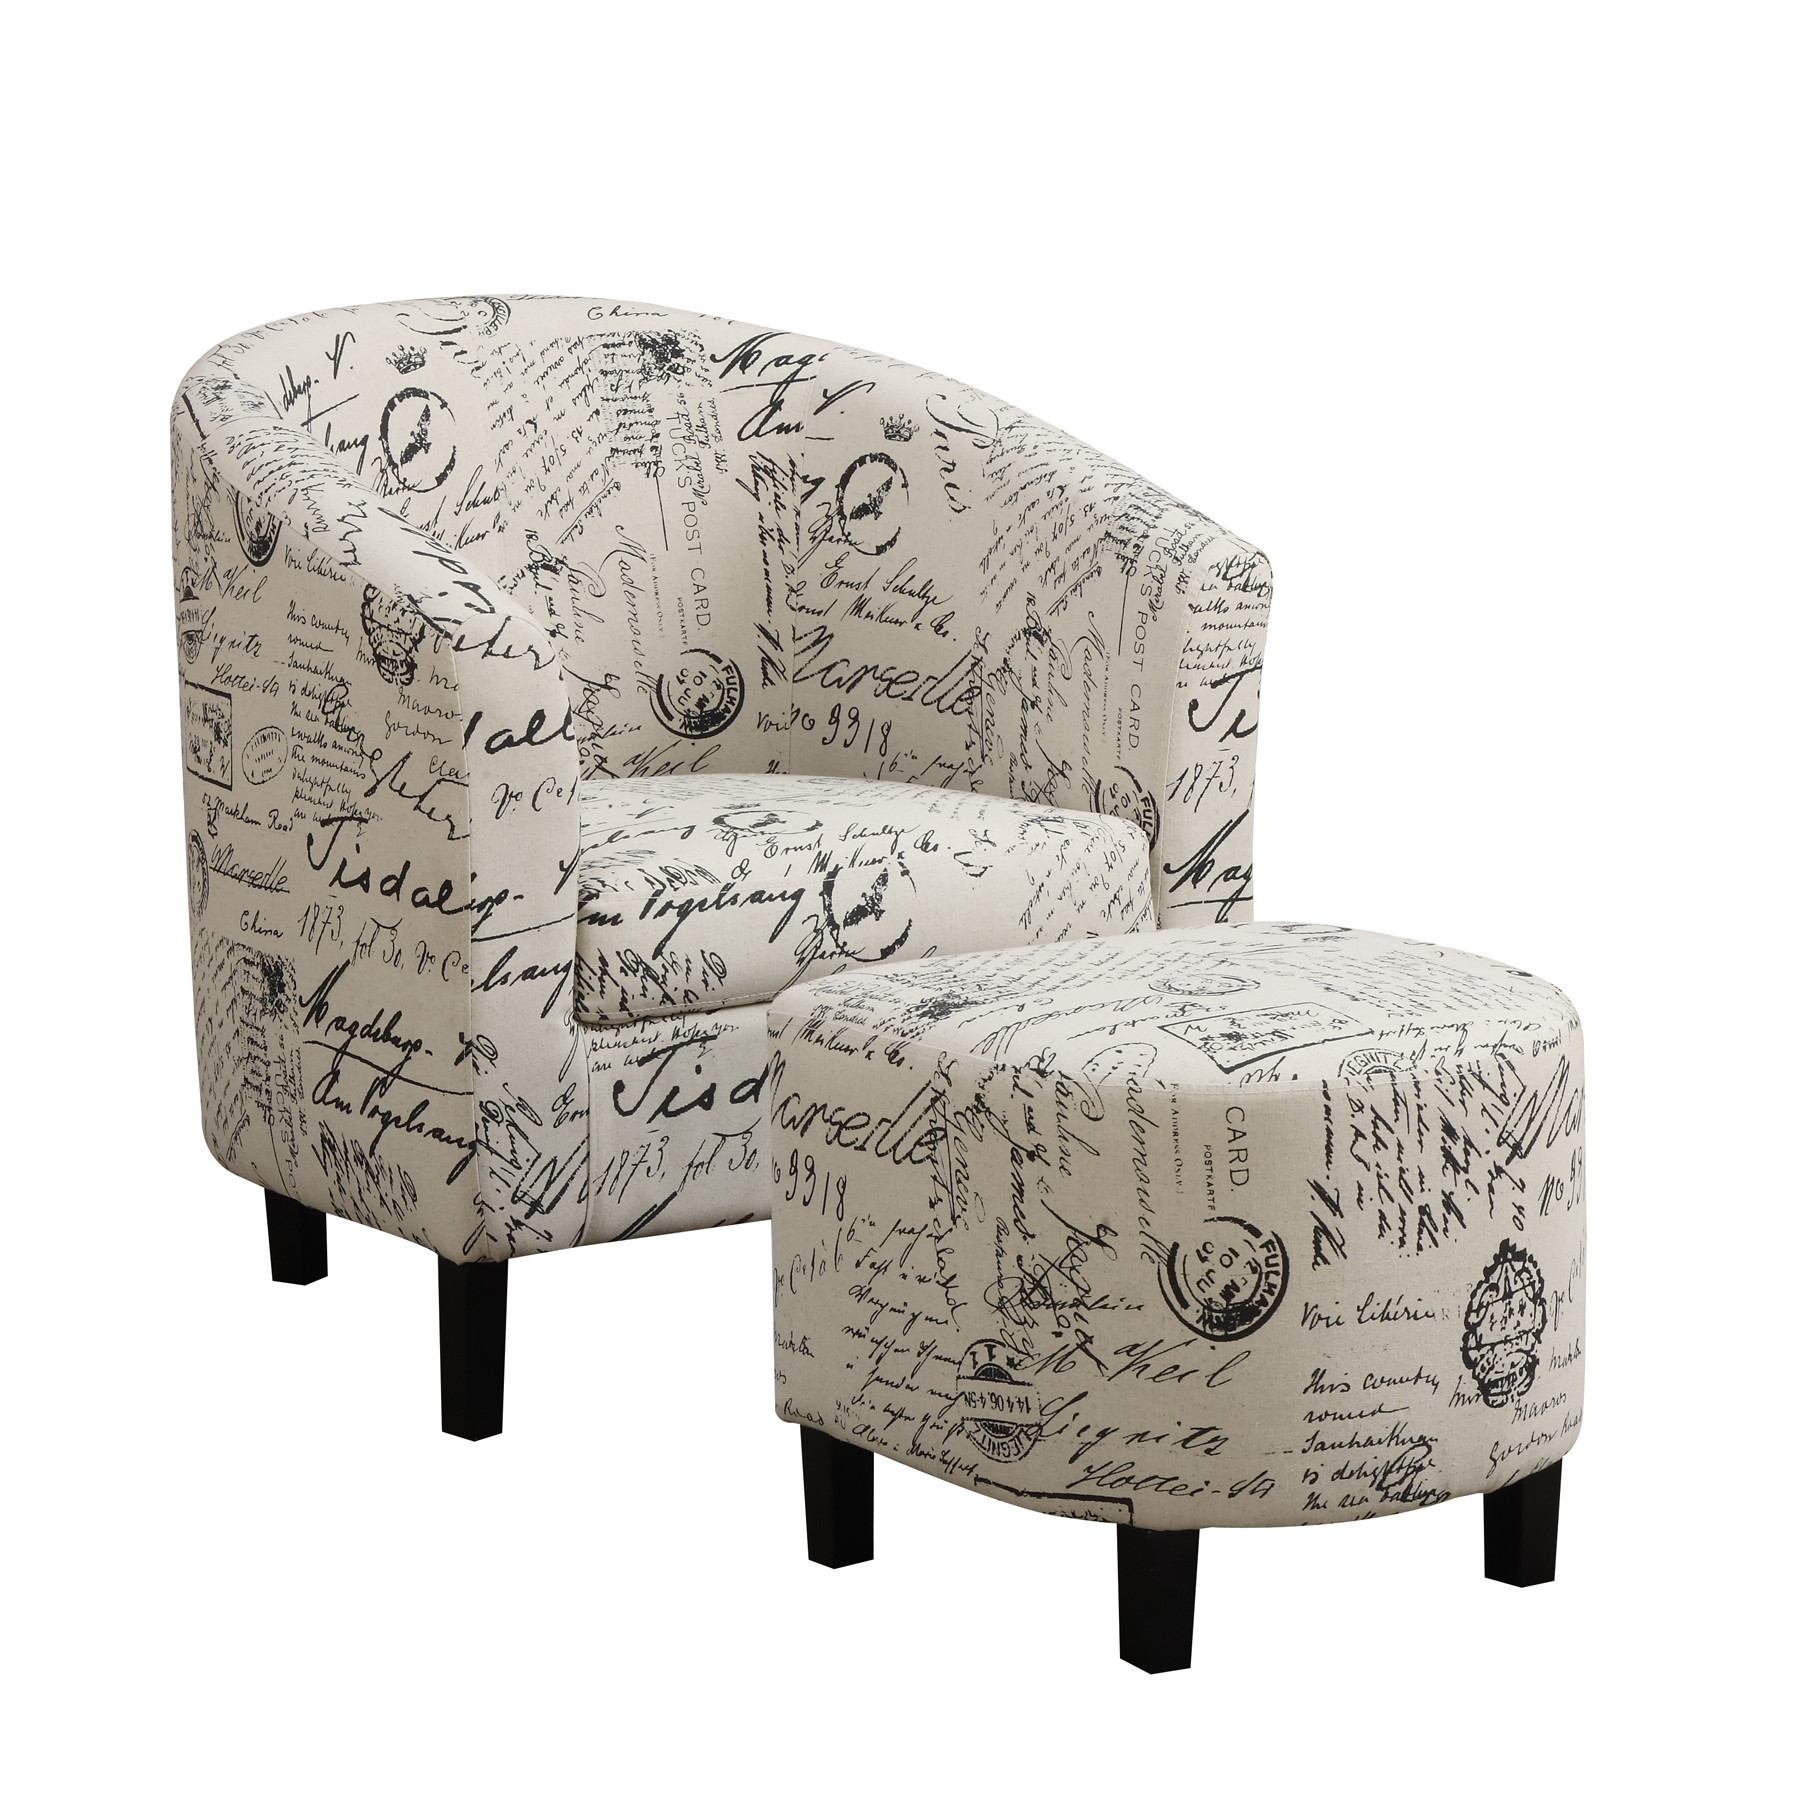 Awesome Printed Chairs 18 In with Printed Chairs